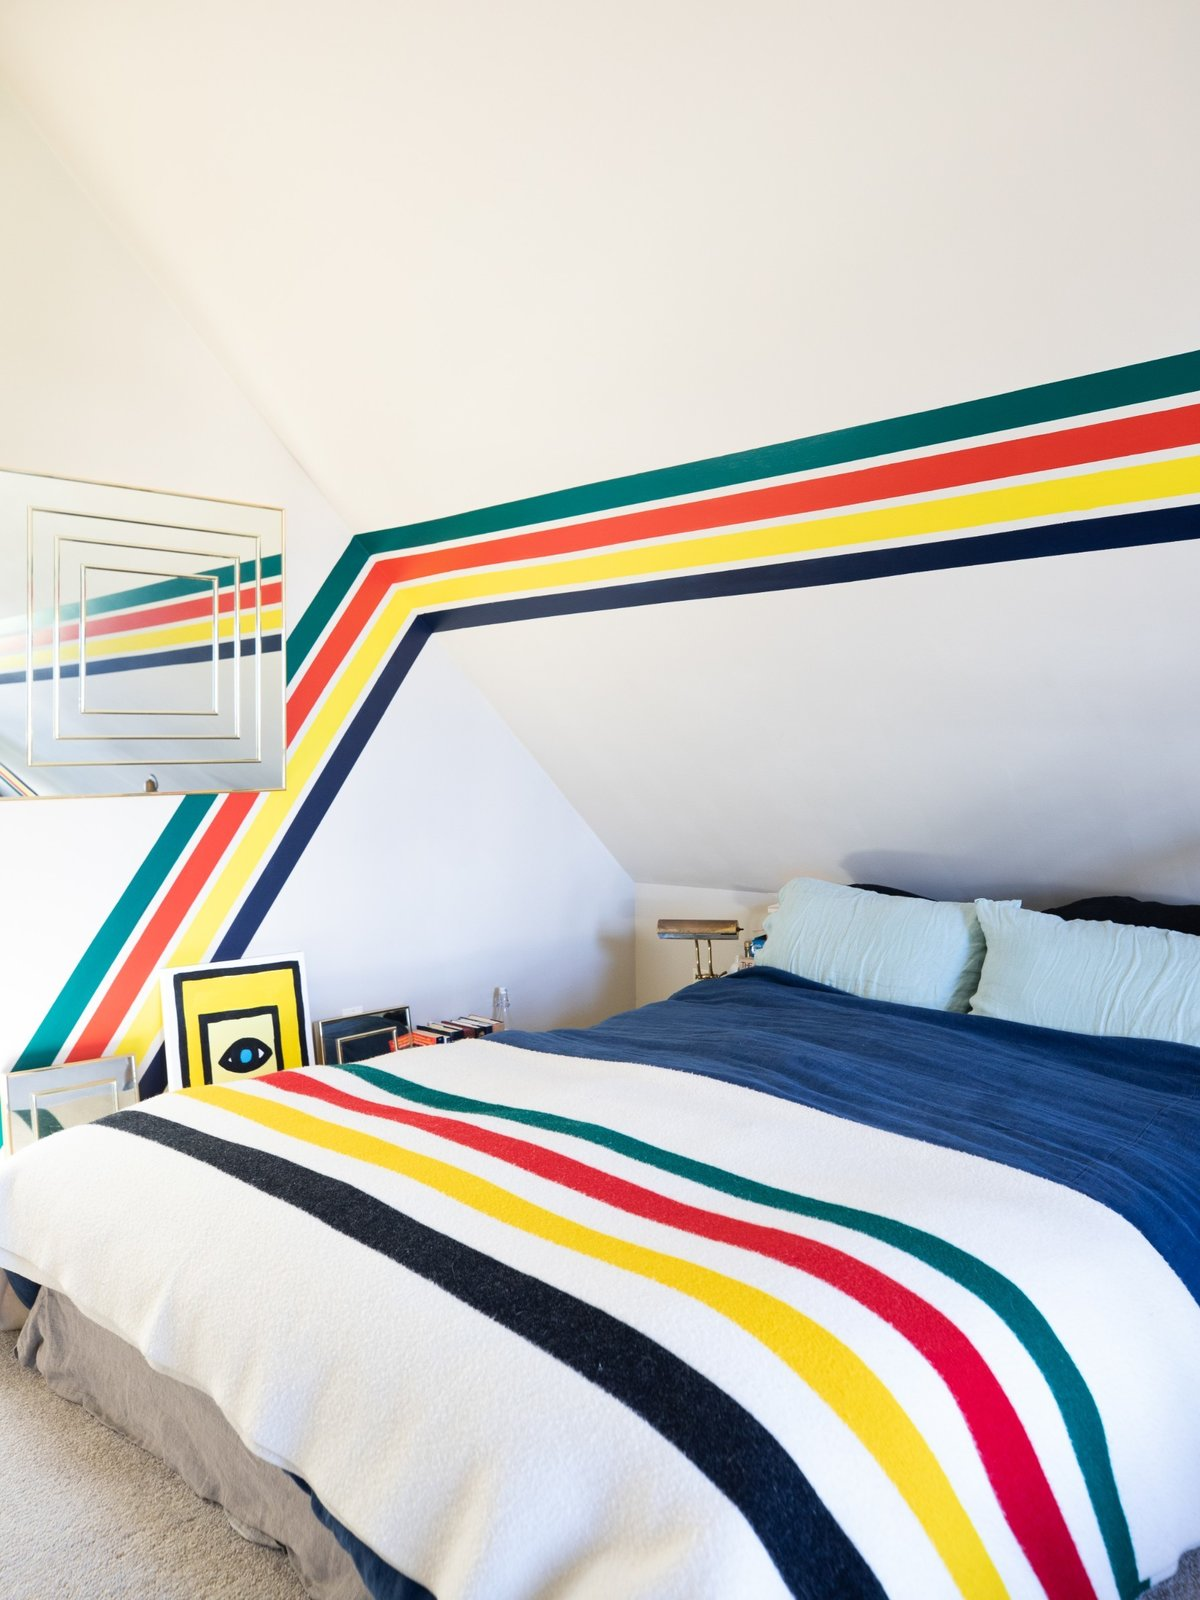 Windy's bedroom is teeming with her favorite Hudson Bay stripes. (Sothear Nuon)